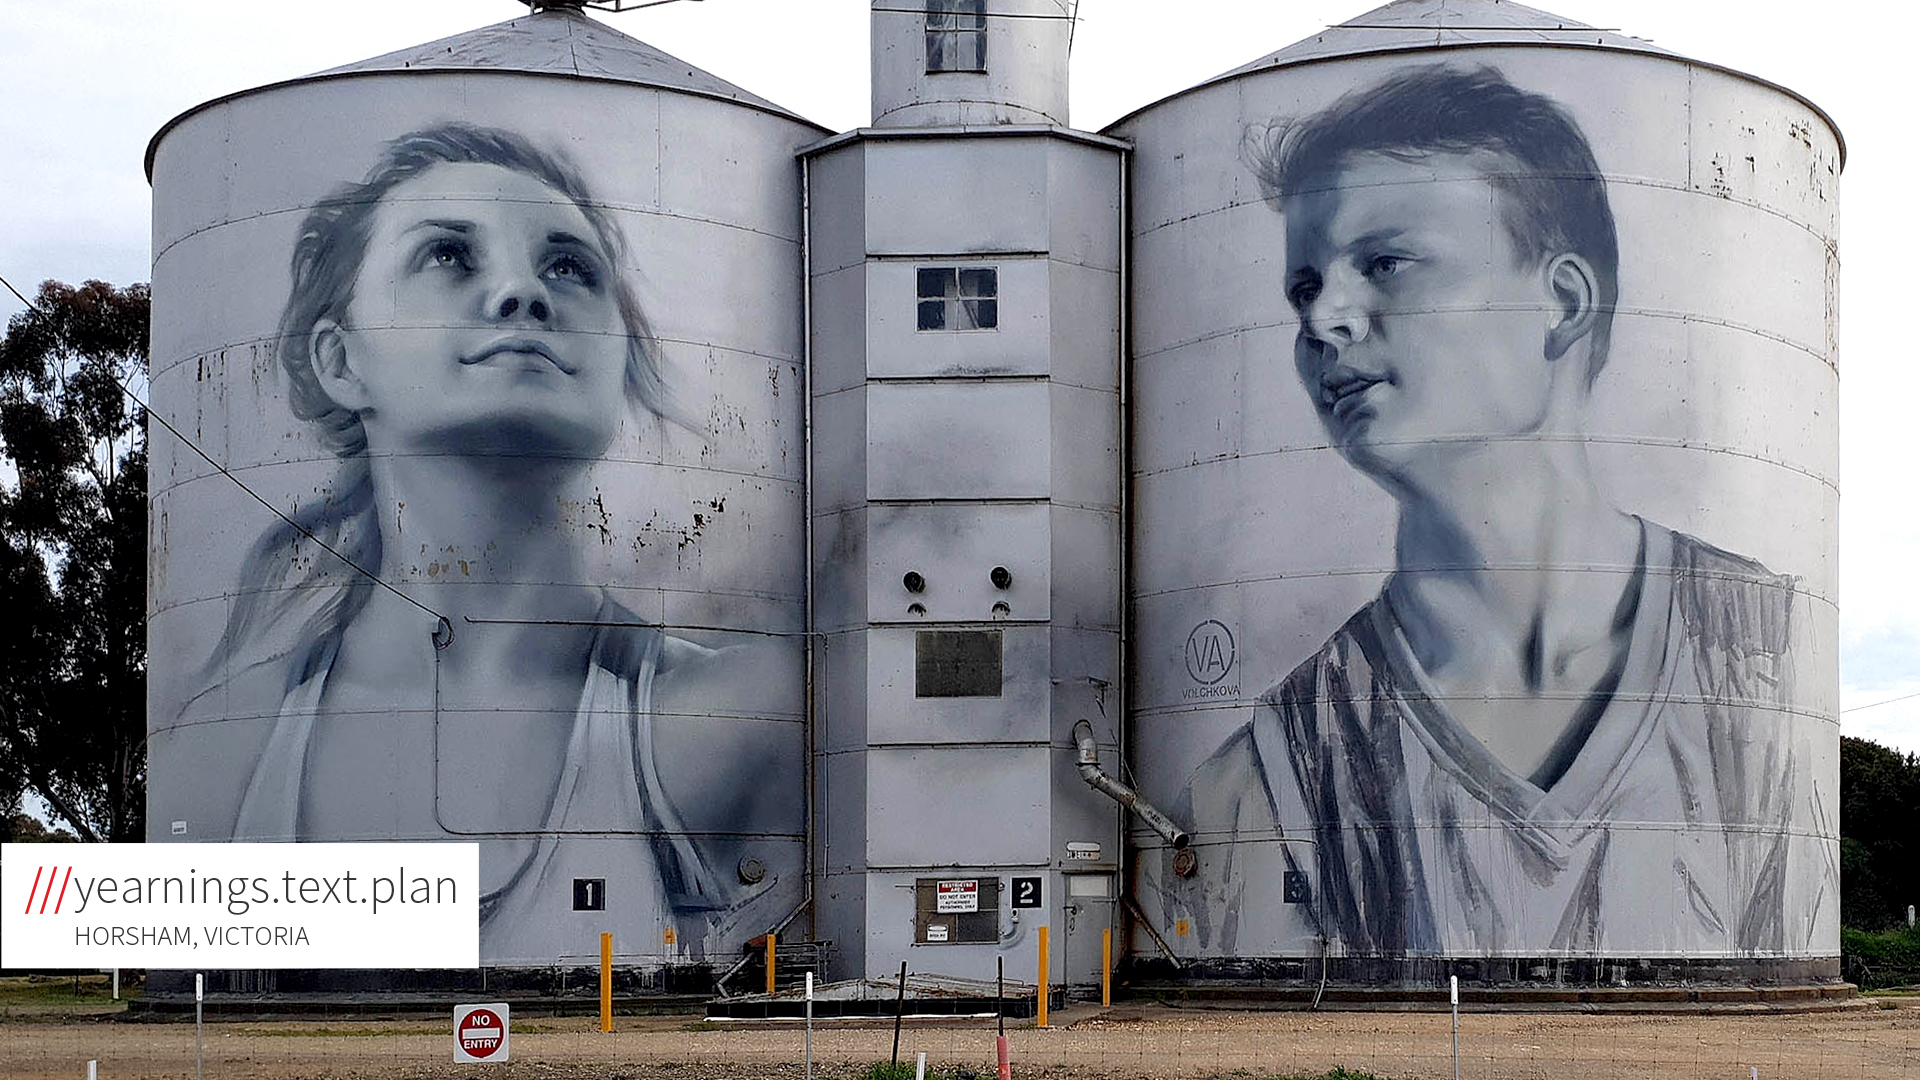 silo with imagery on at yearnings.text.plan